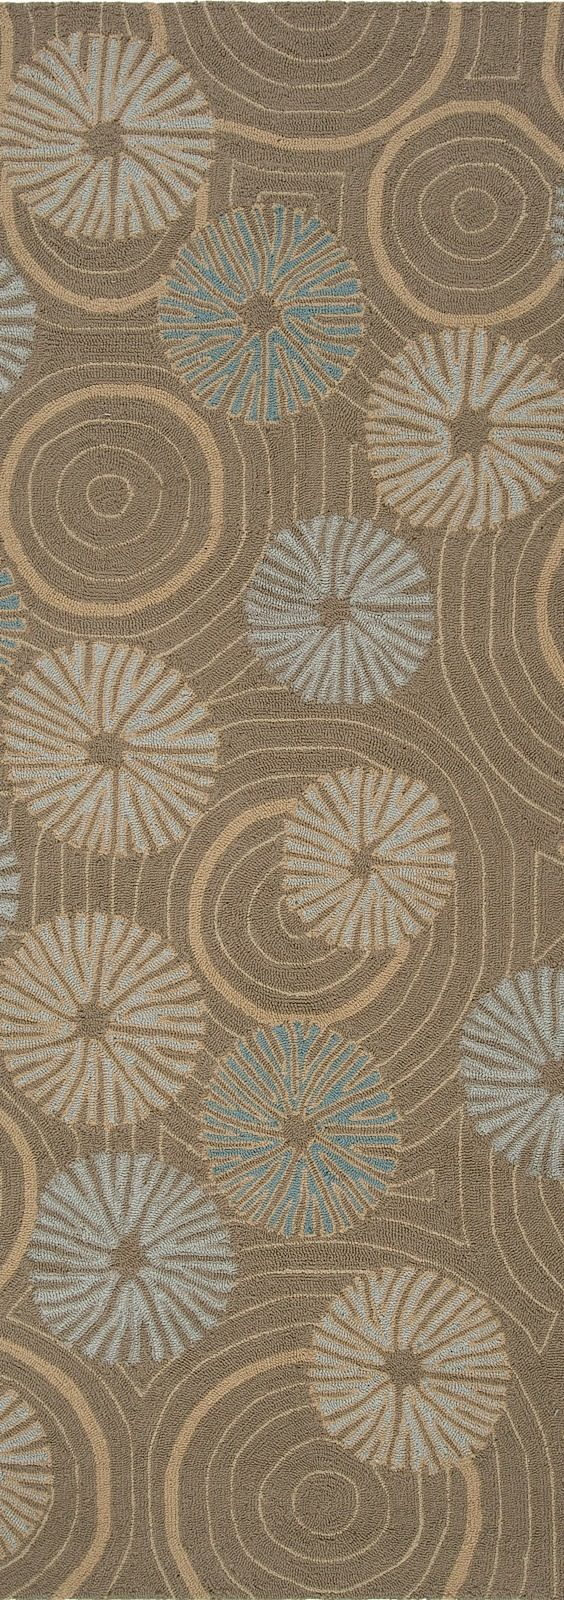 surya labrinth indoor/outdoor area rug collection